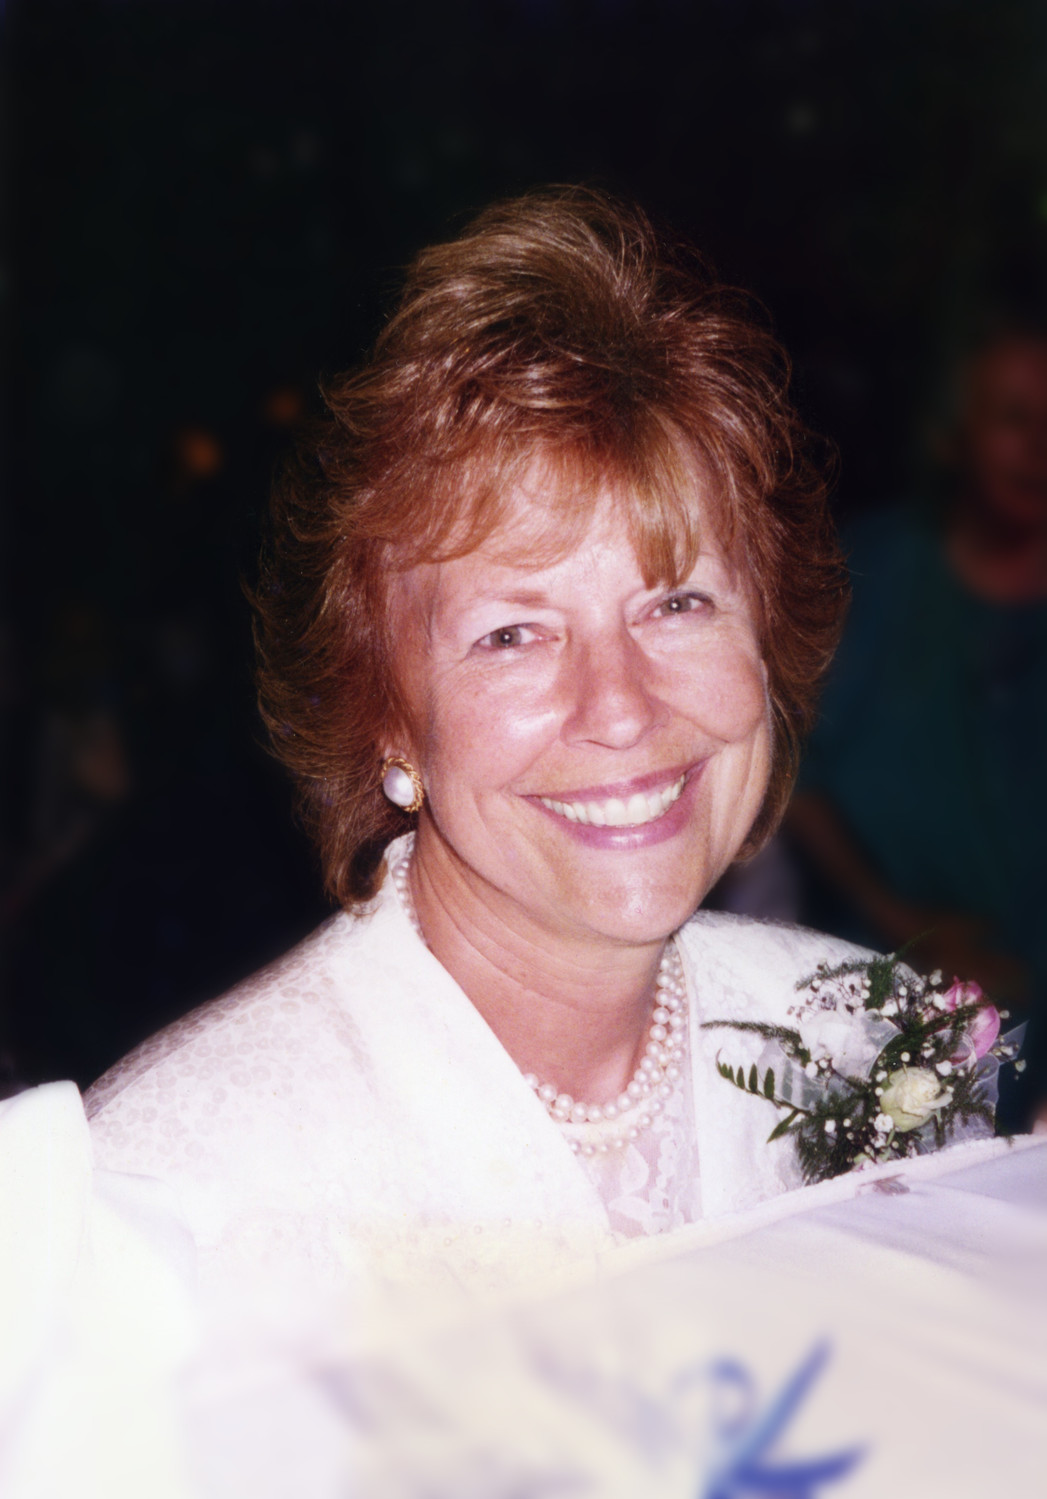 Nancy Epstein, 87, from Glen Cove, died on Nov. 27 after a life filled with love, travels and elegant parties.